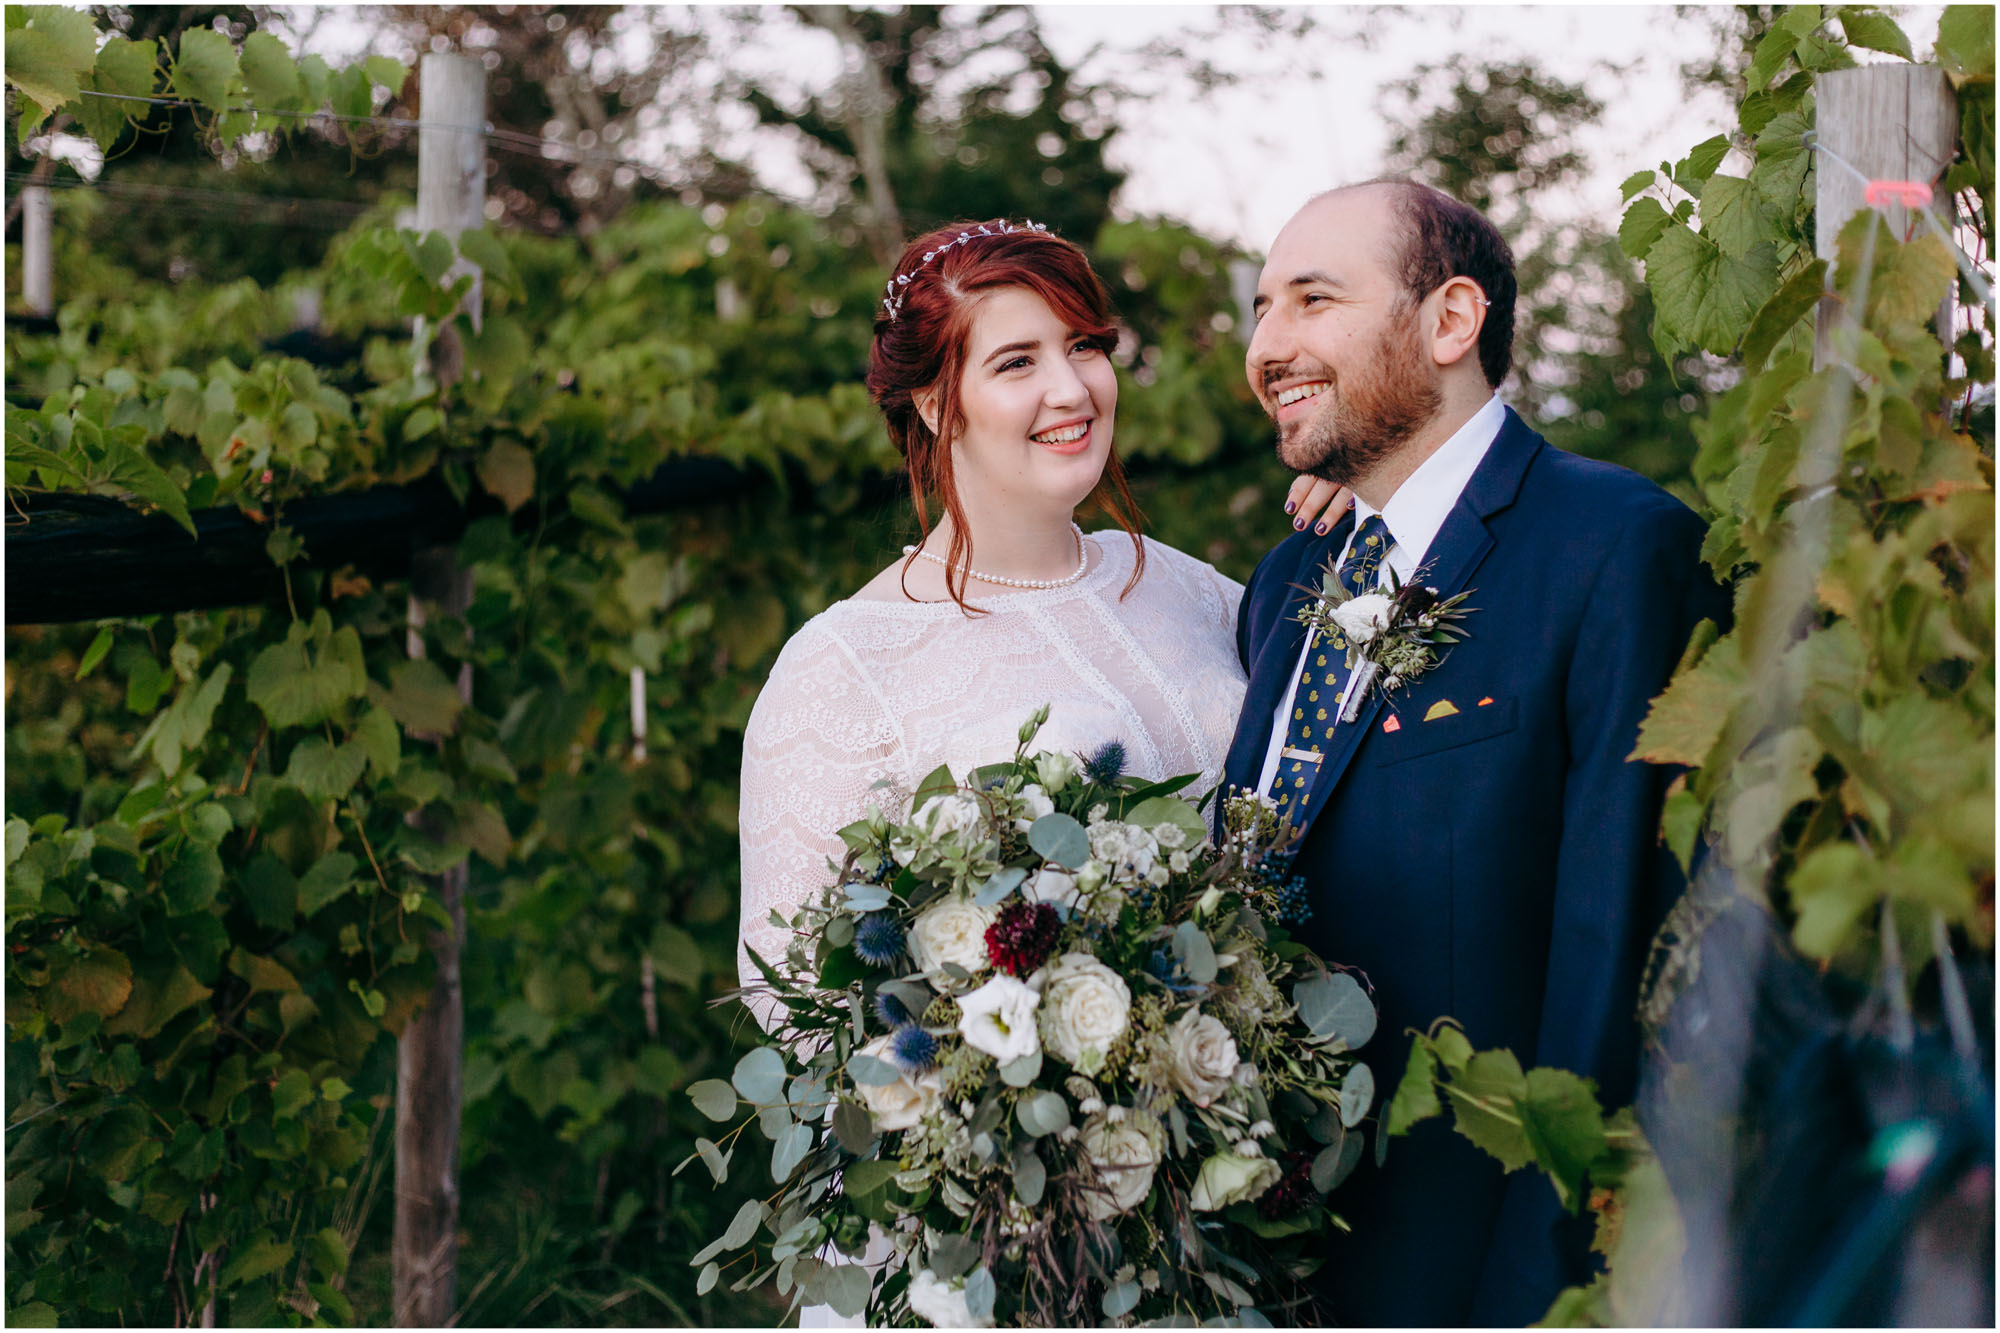 Trendy, hipster bride and groom smiling in vineyard - by Ashleigh Laureen Photography at LaBelle Winery in Amherst, New Hampshire